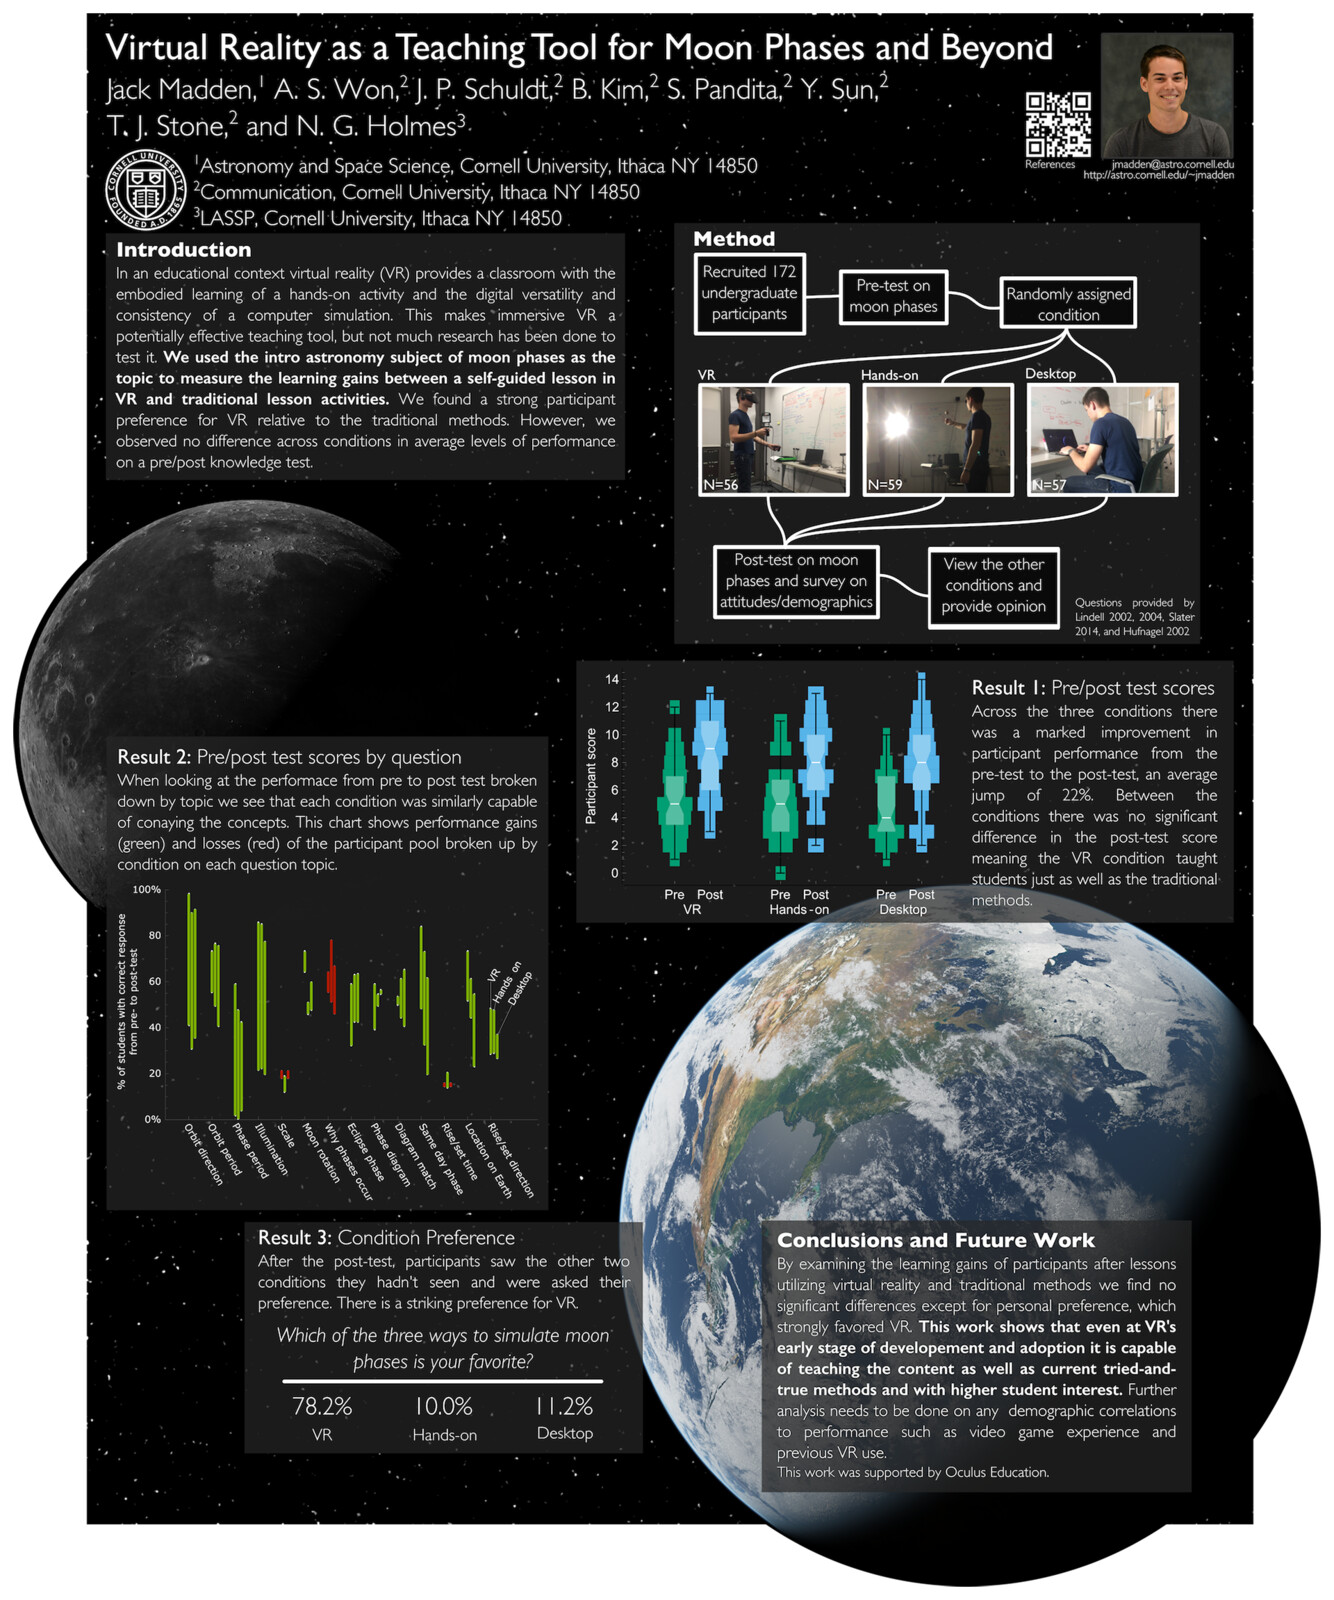 [Poster] Virtual Reality as a Teaching Tool for Moon Phases and Beyond